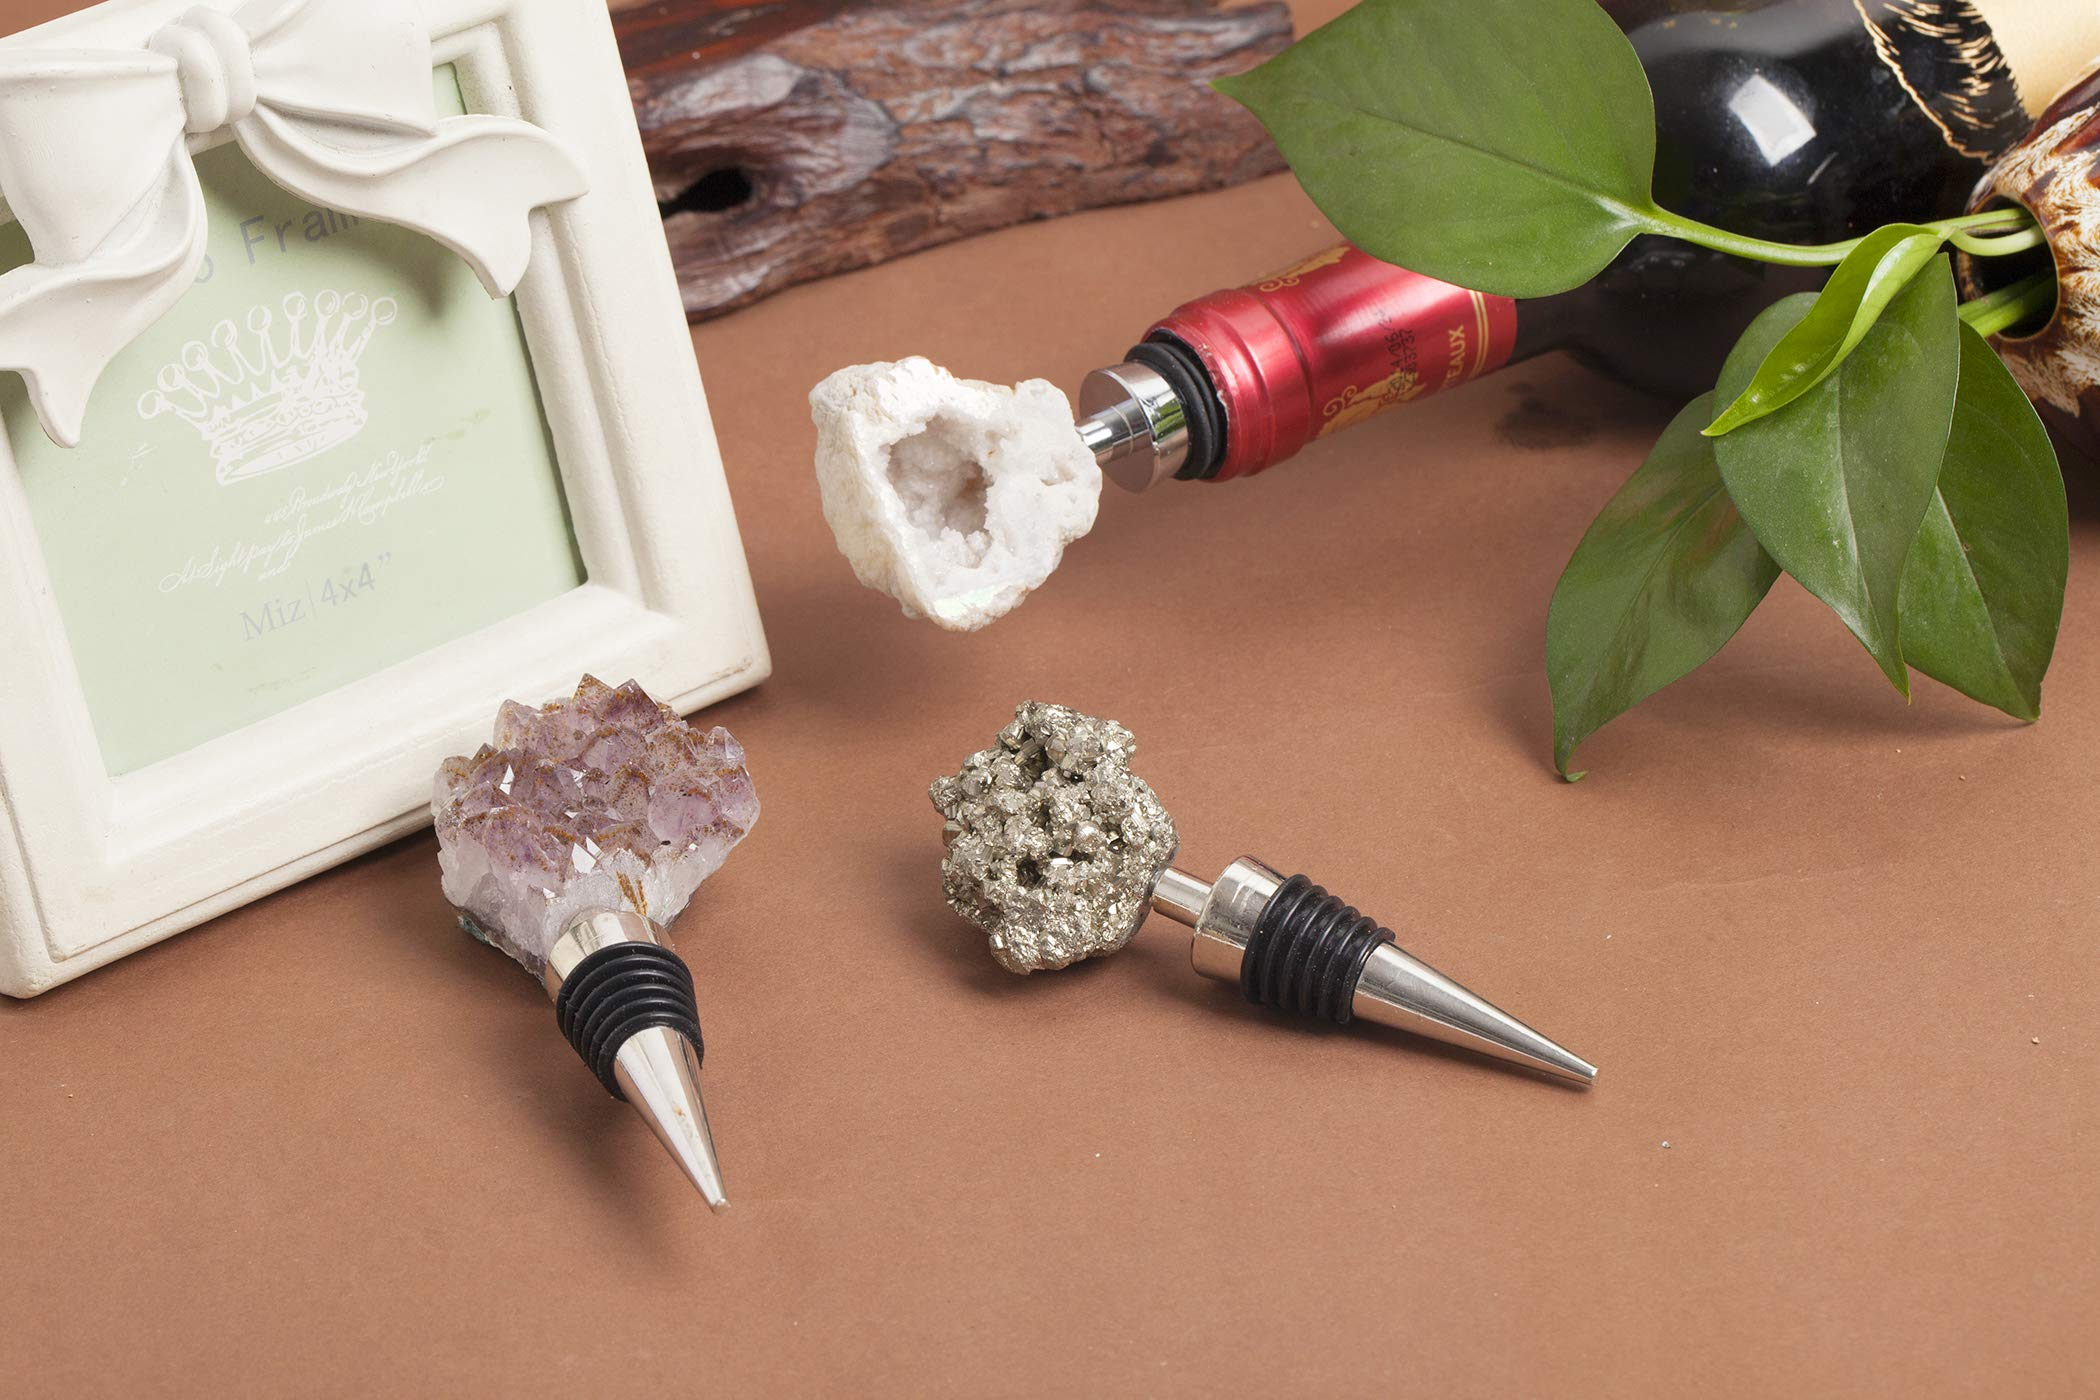 AMOYSTONE Wine Stoppers Natural Geode Crystal Rock Stone Bar Tools 3Pcs (Mix, 1.5-2'') Irregular by AMOYSTONE